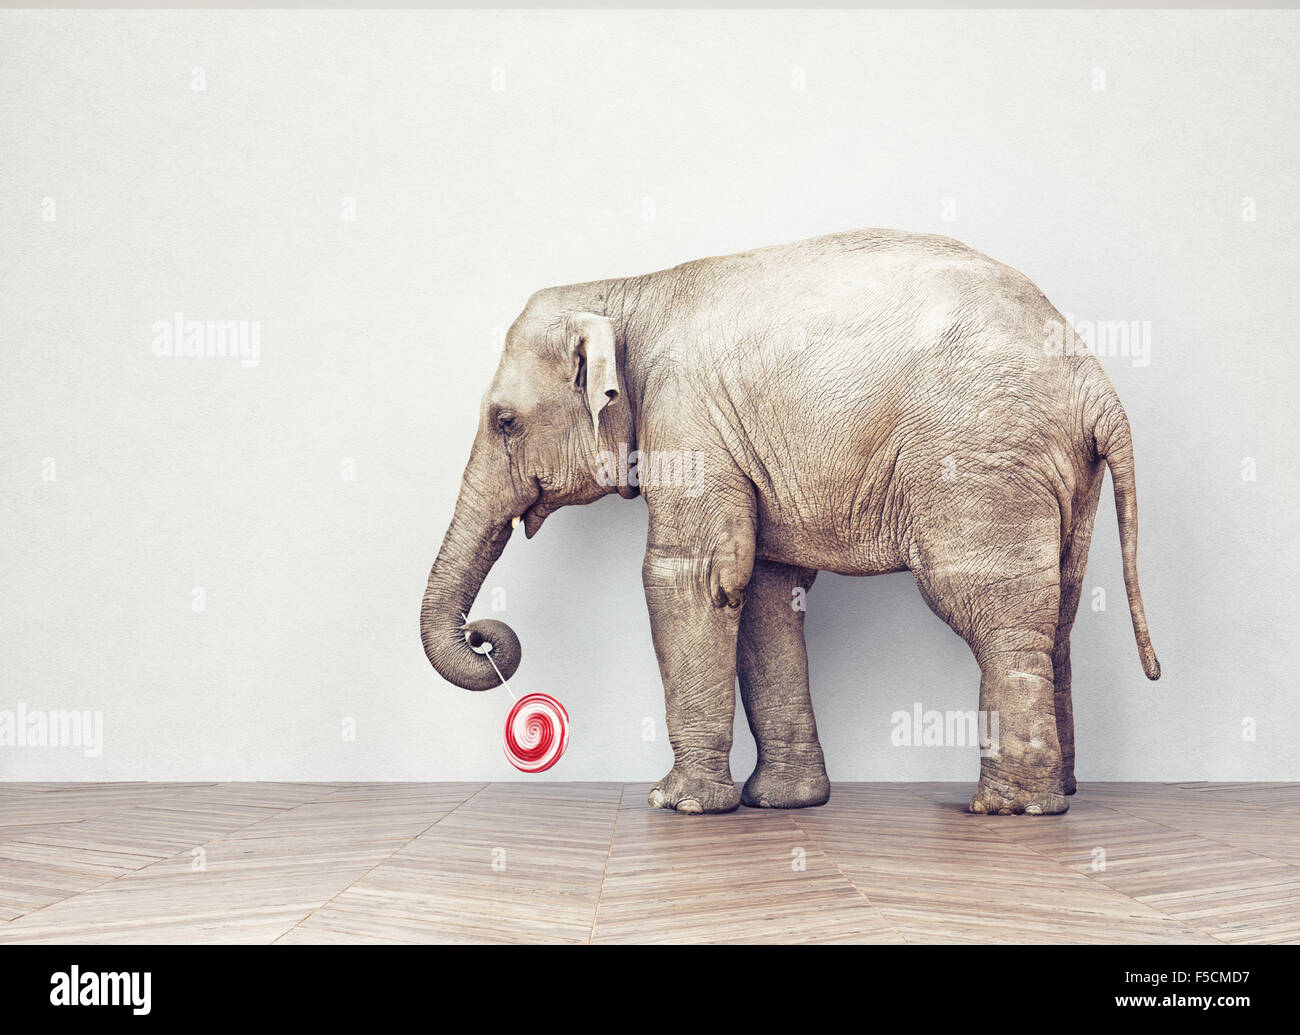 an elephant calm in the room near white wall. Creative concept - Stock Image